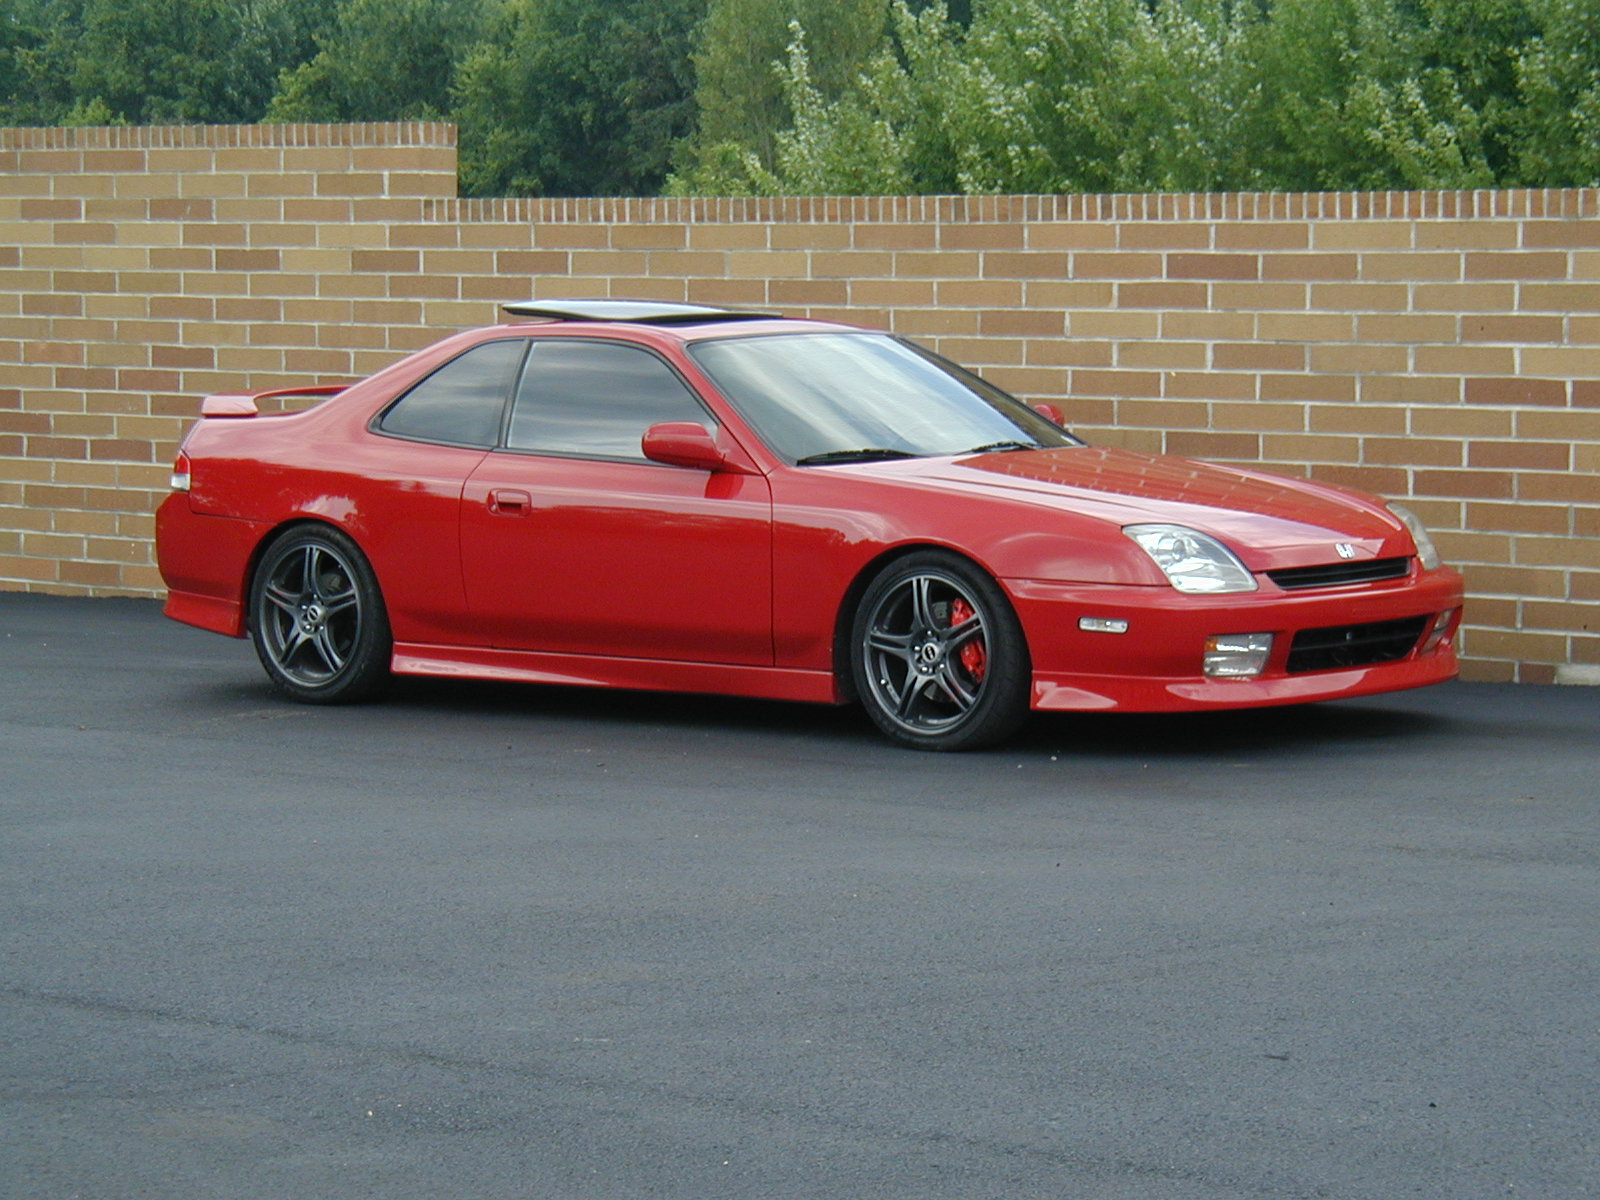 91 Honda Prelude Prelude wallpaper Pix - Page 3 - Honda Forum : Honda and ...